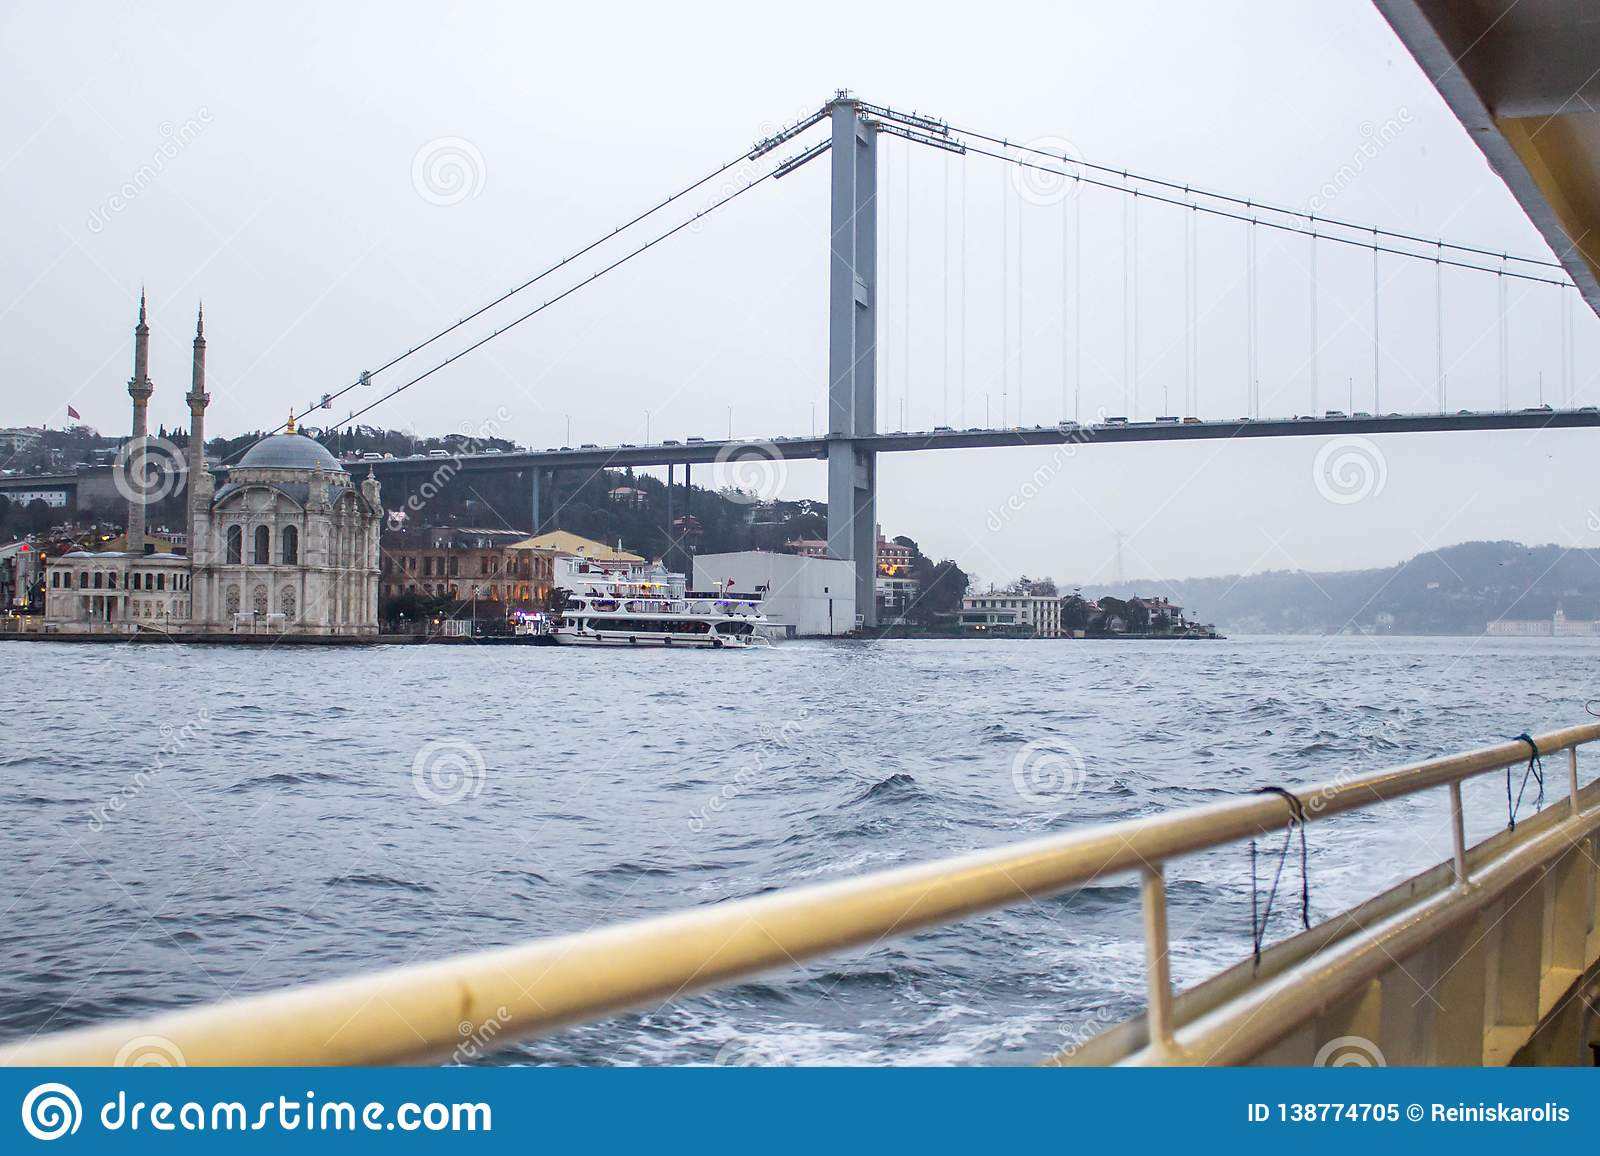 Istanbul bridge and mosque from river boat in cloudy afternoon.